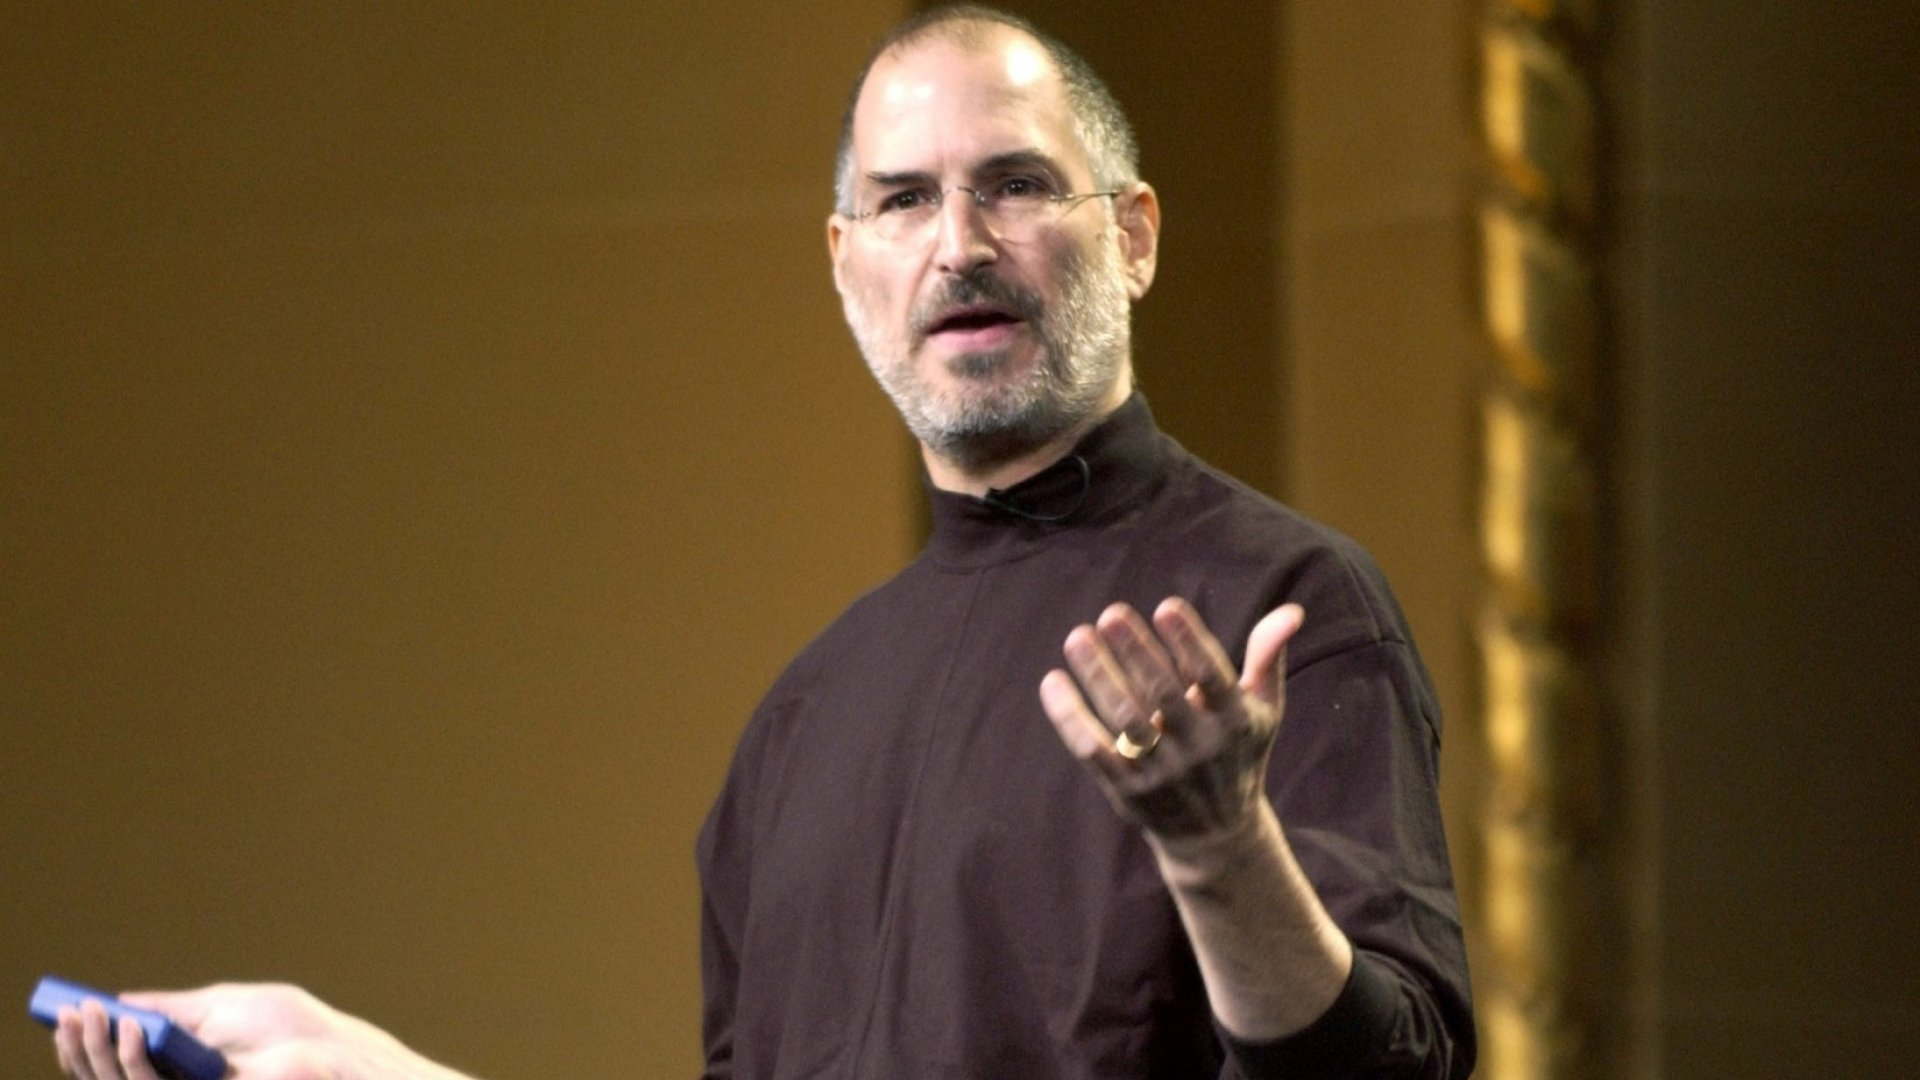 The Secret of Steve Jobs' Remarkable Success Revealed in Just 3 Words: Purpose-Driven Life